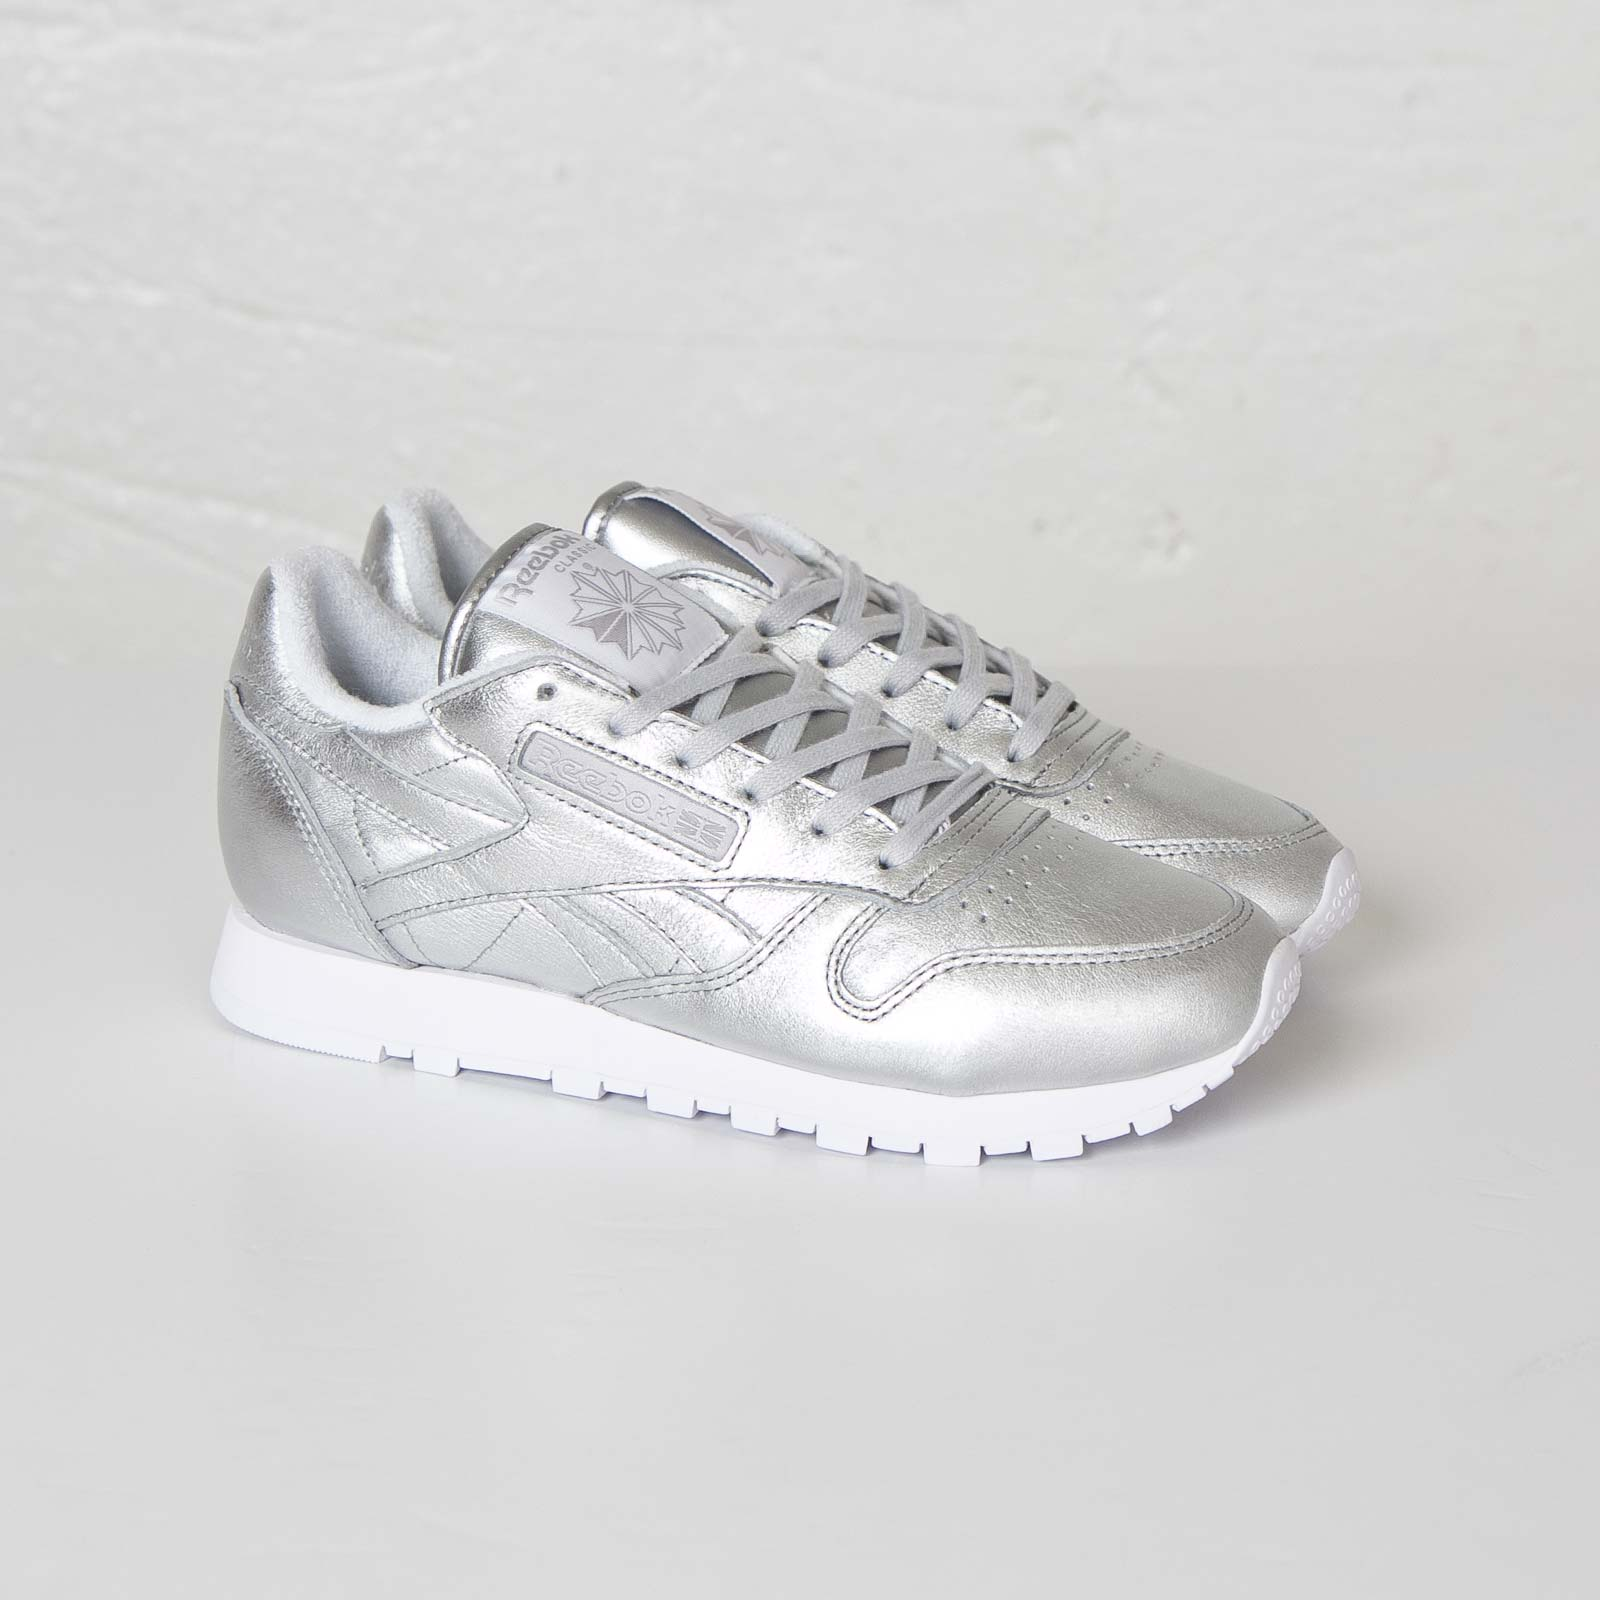 check out 138a0 19eb2 Reebok Classic Leather Spirit - V62700 - Sneakersnstuff ...